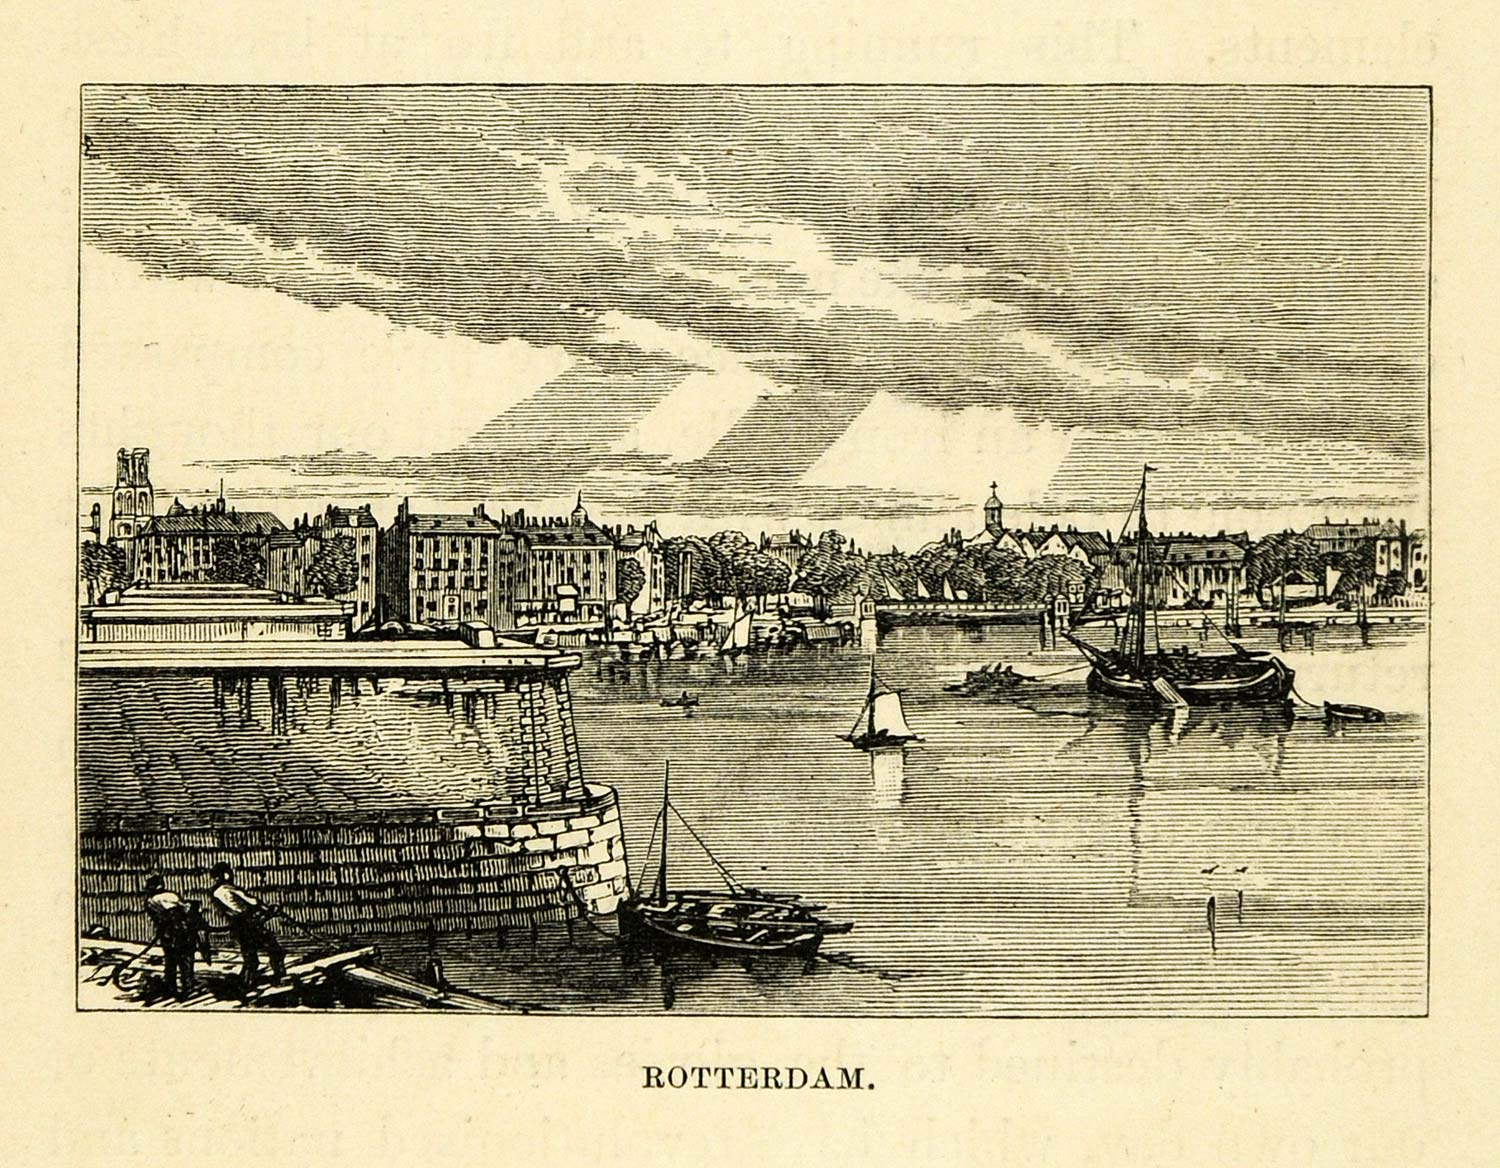 1877 Wood Engraving Rotterdam Holland Cityscape Historic Image Coastal Town XGF1